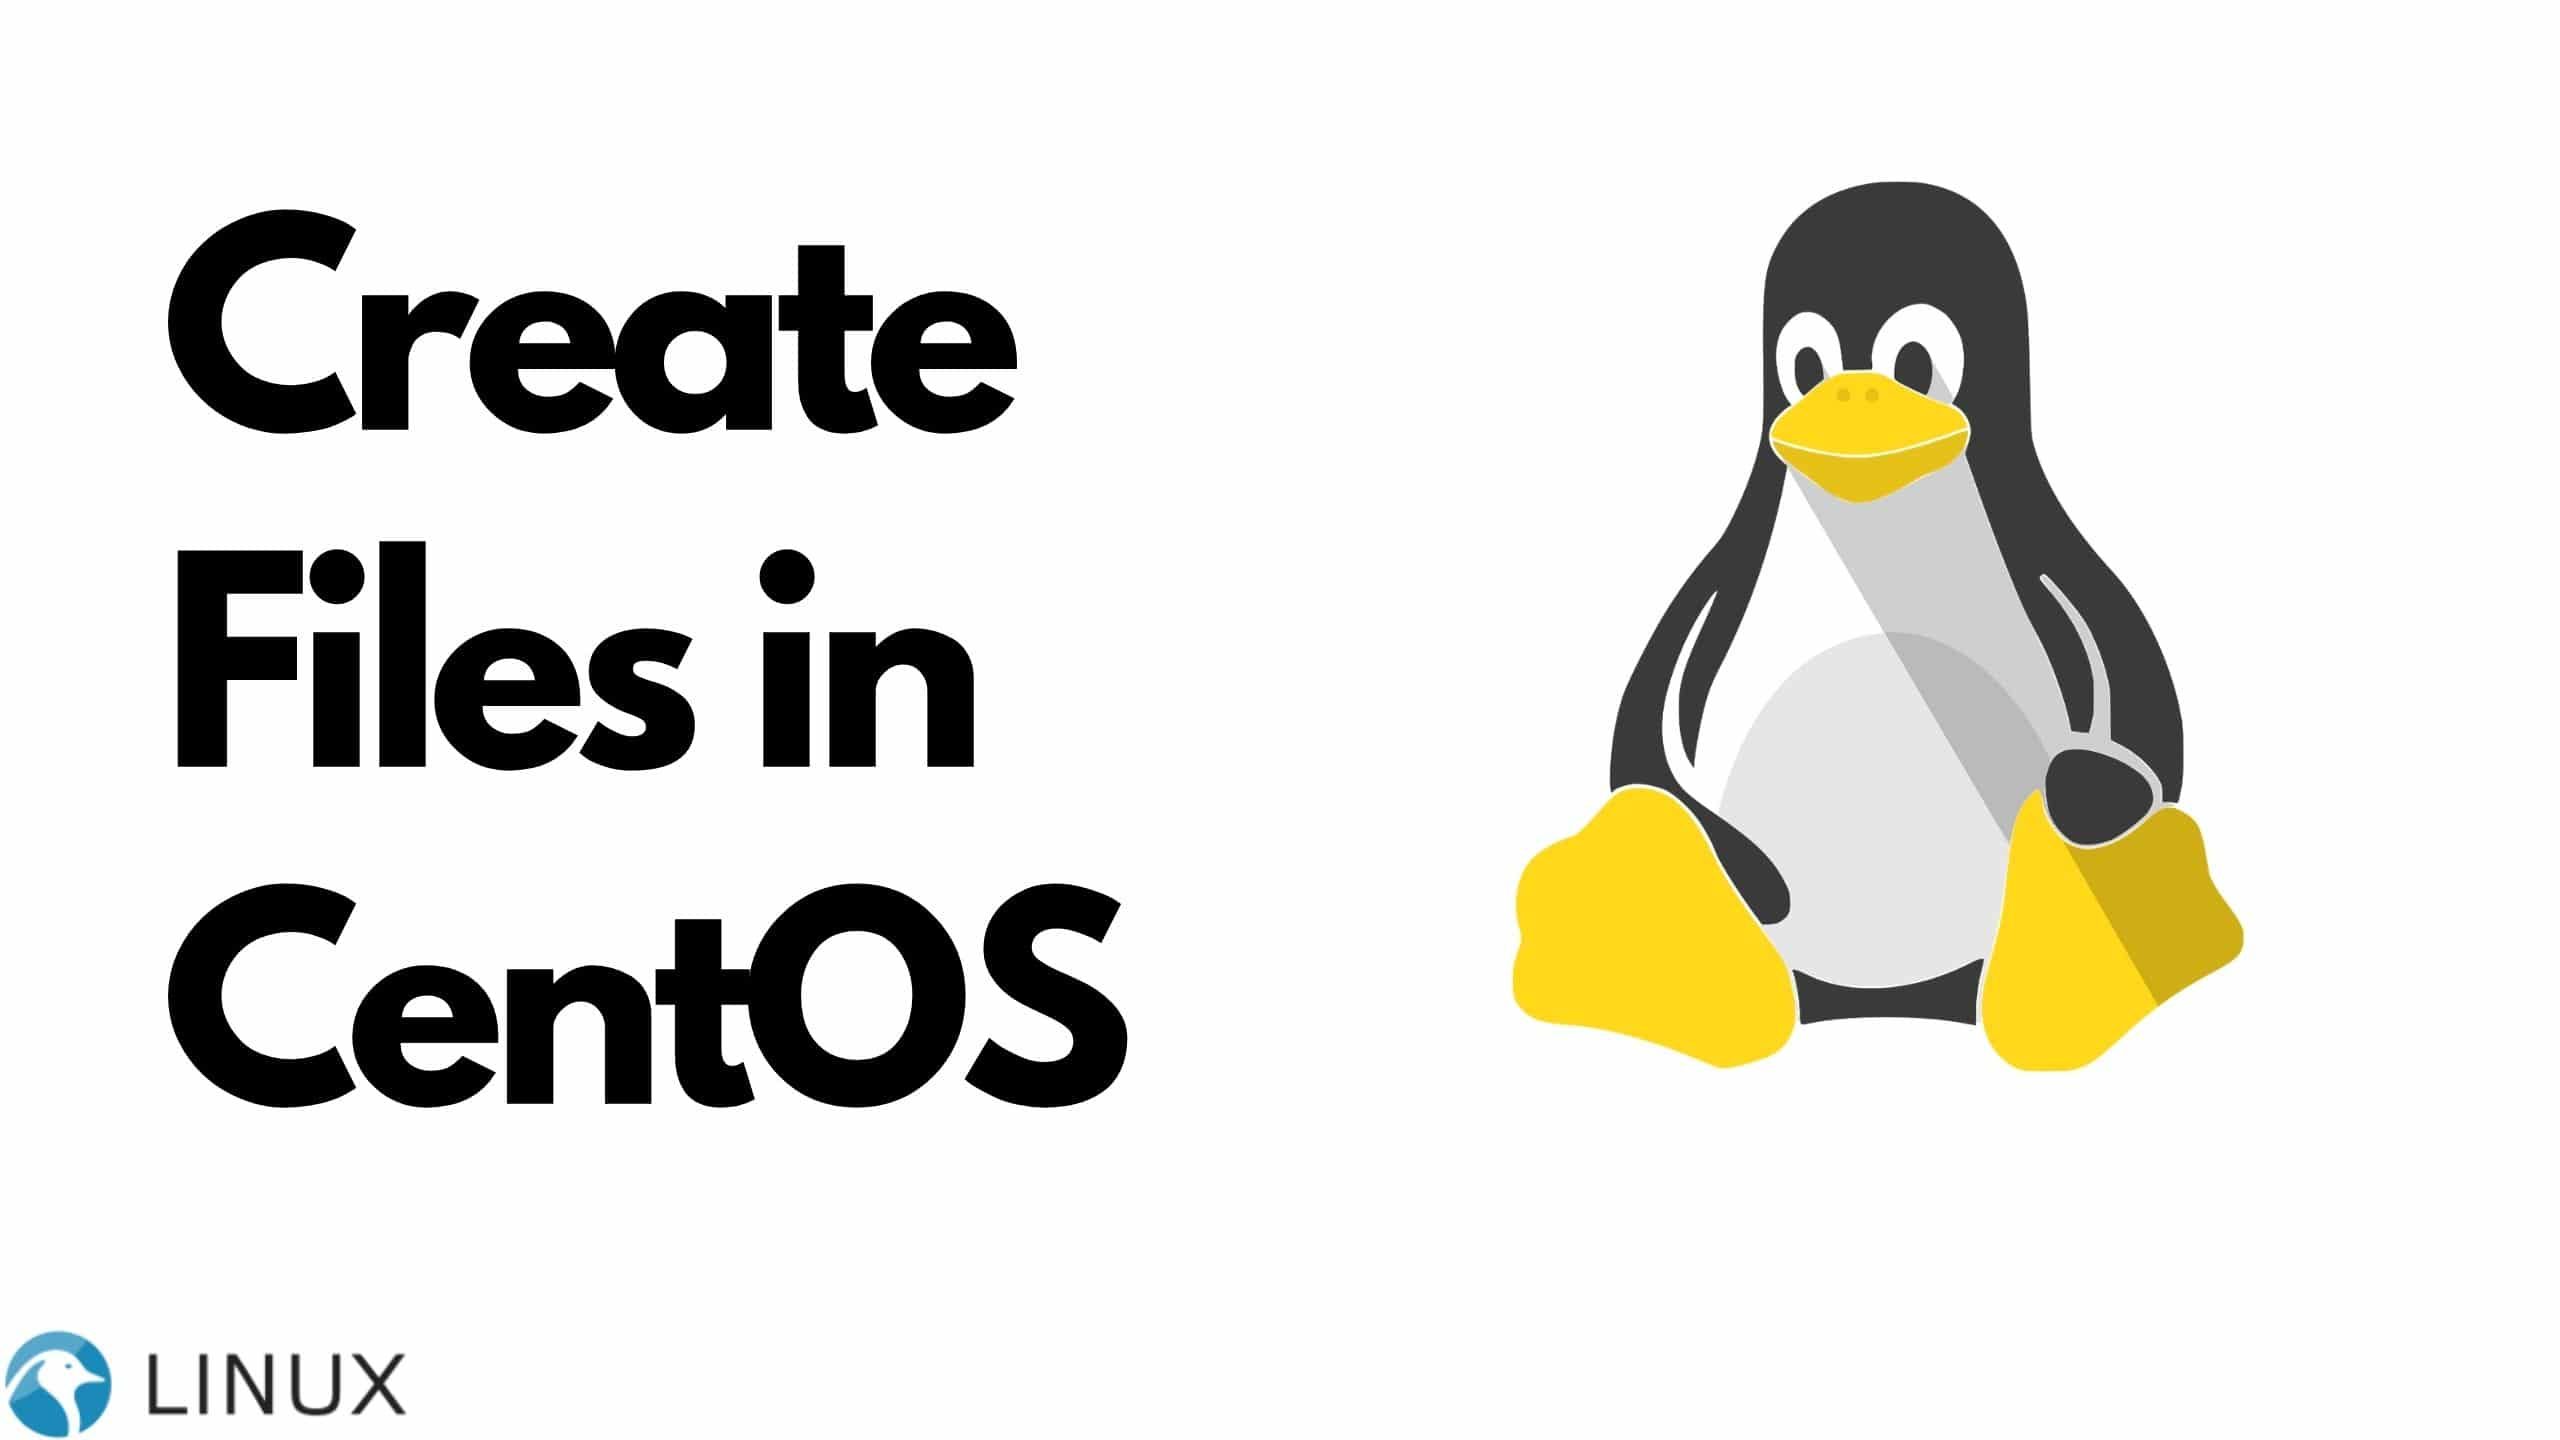 How to create Files in CentOS